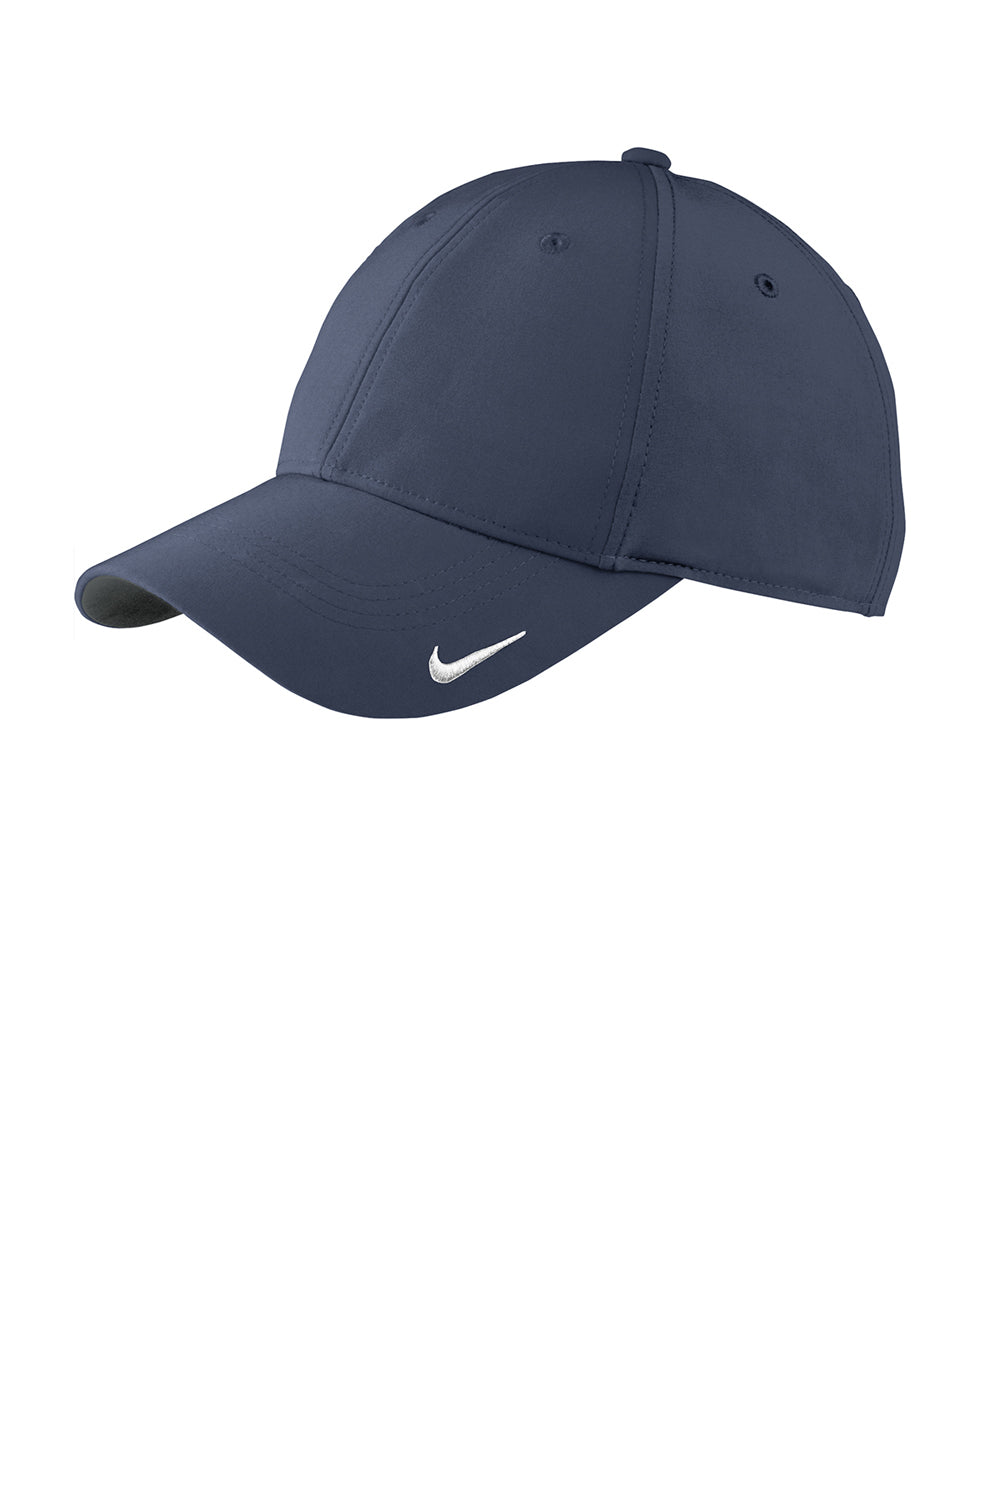 Nike 779797 Mens Moisture Wicking Adjustable Hat Navy Blue Front